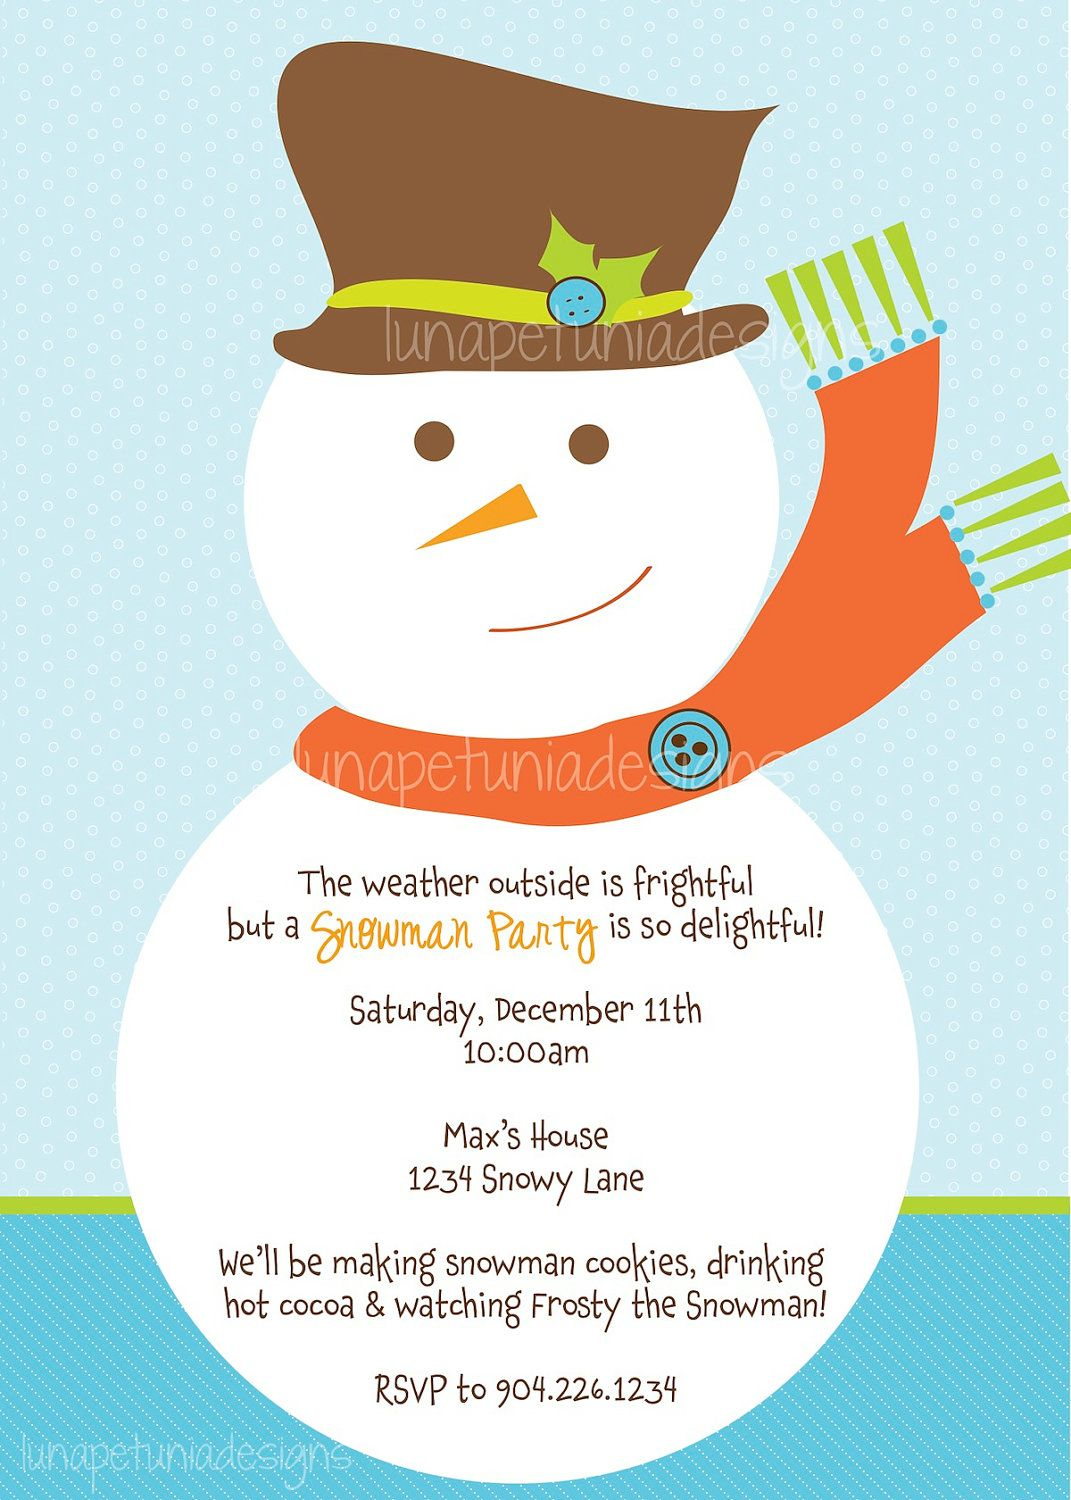 snowman party invitation any colors snow days pinterest